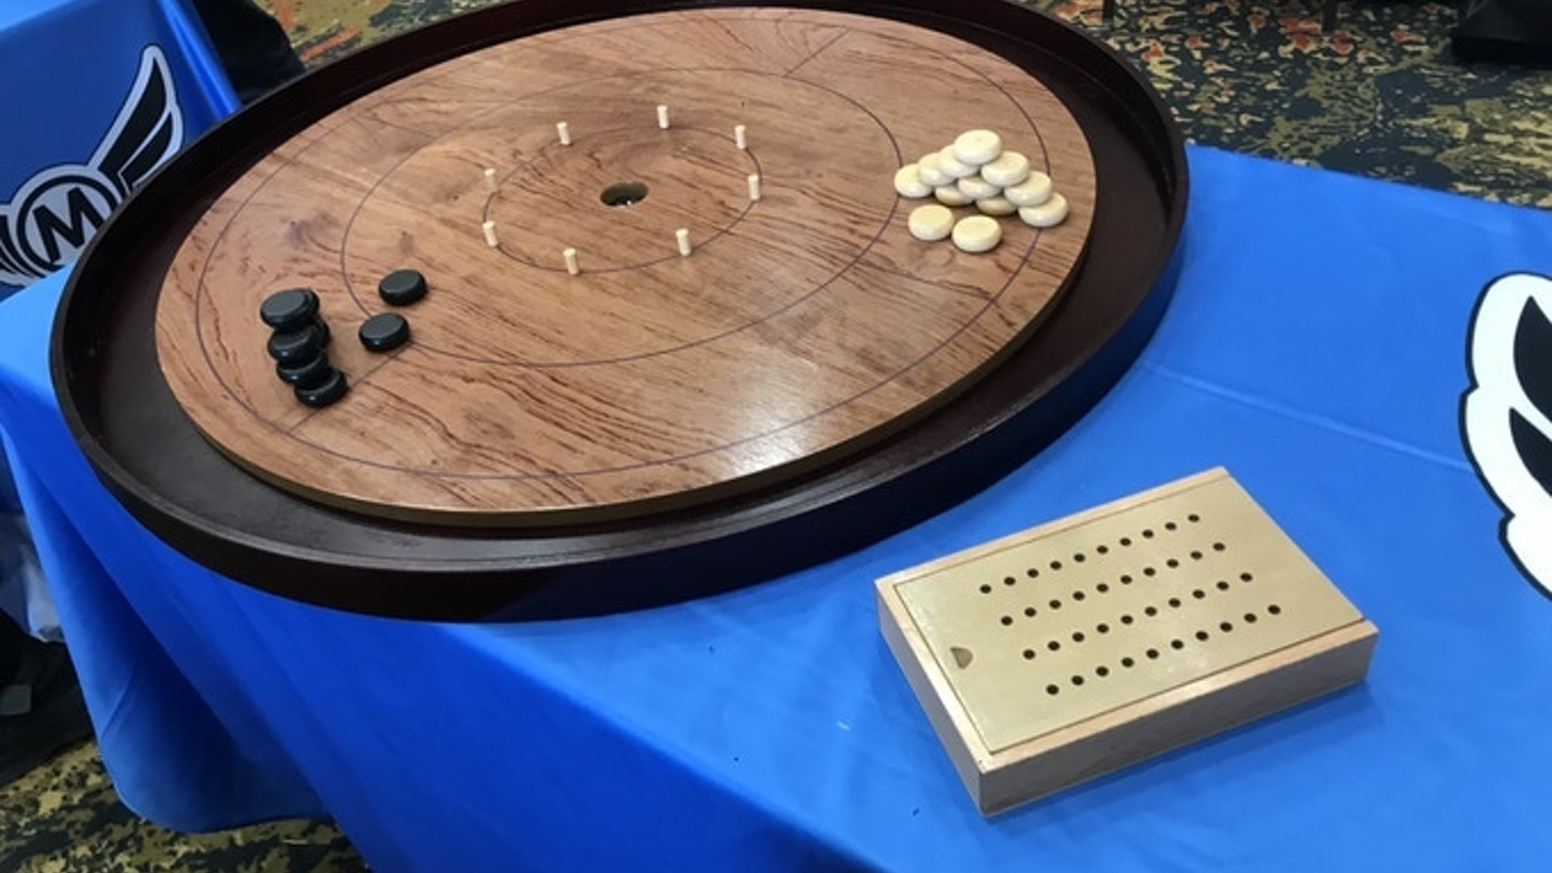 Our 7th Edition Crokinole Board will include many of our past great features plus the added holder for scoring 20s during play.